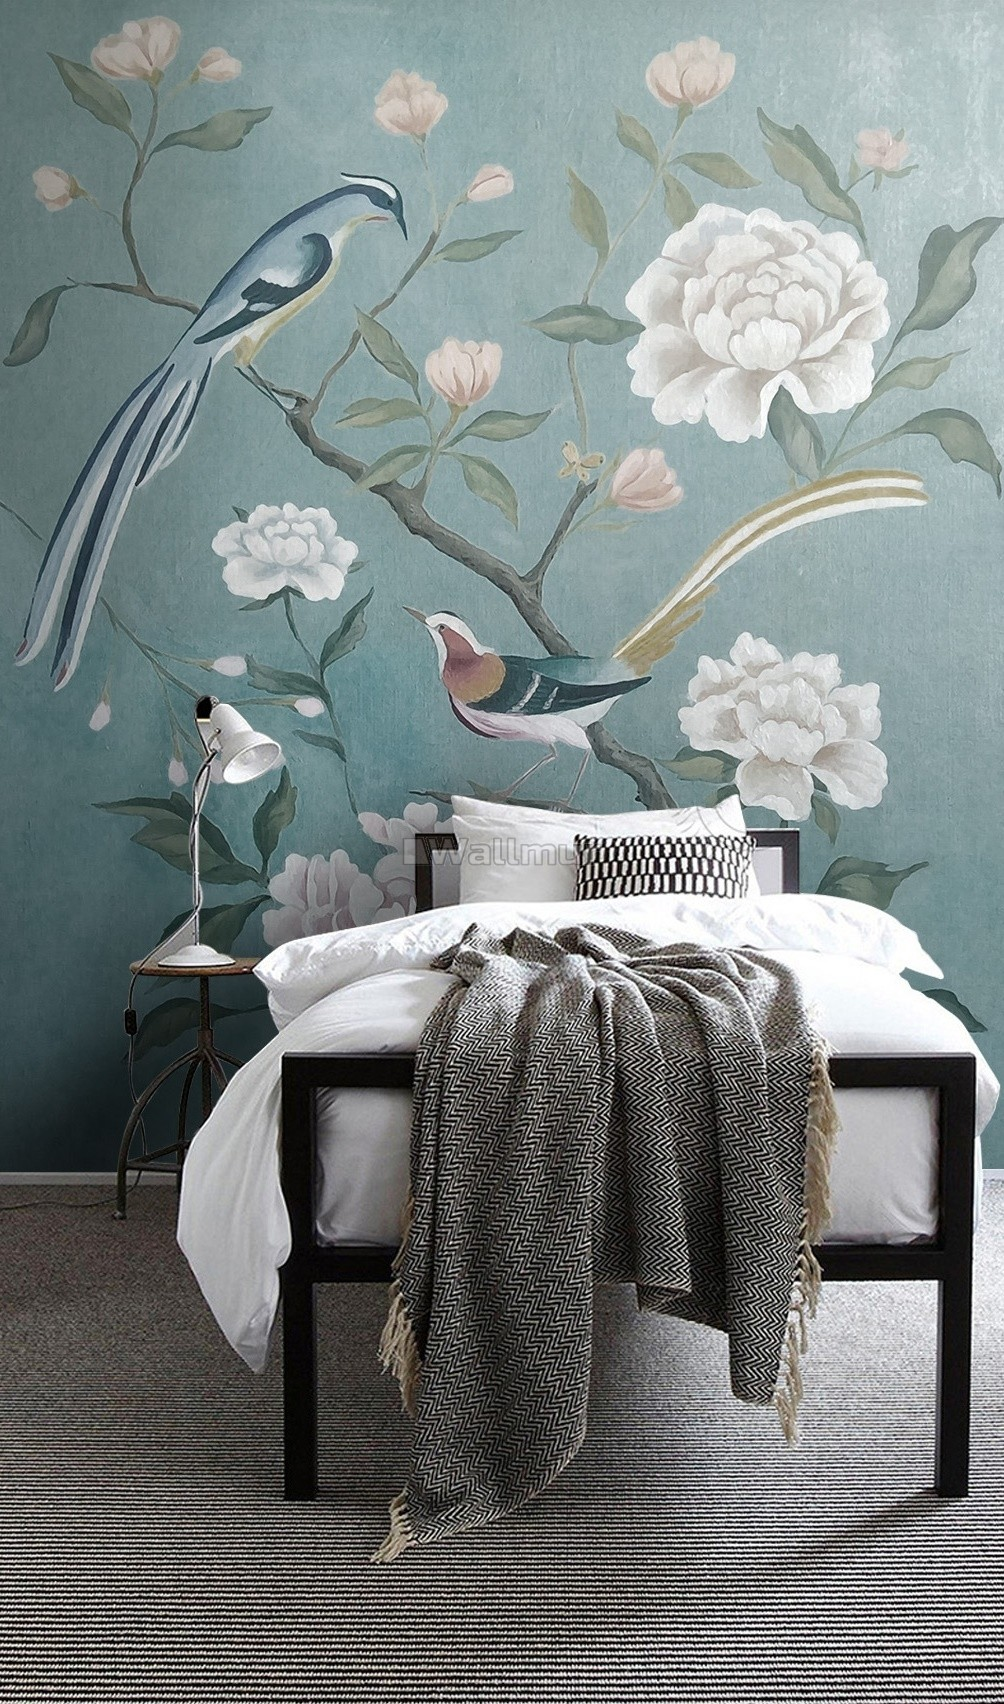 Vintage Peony Floral and Swallow Wallpaper Mural